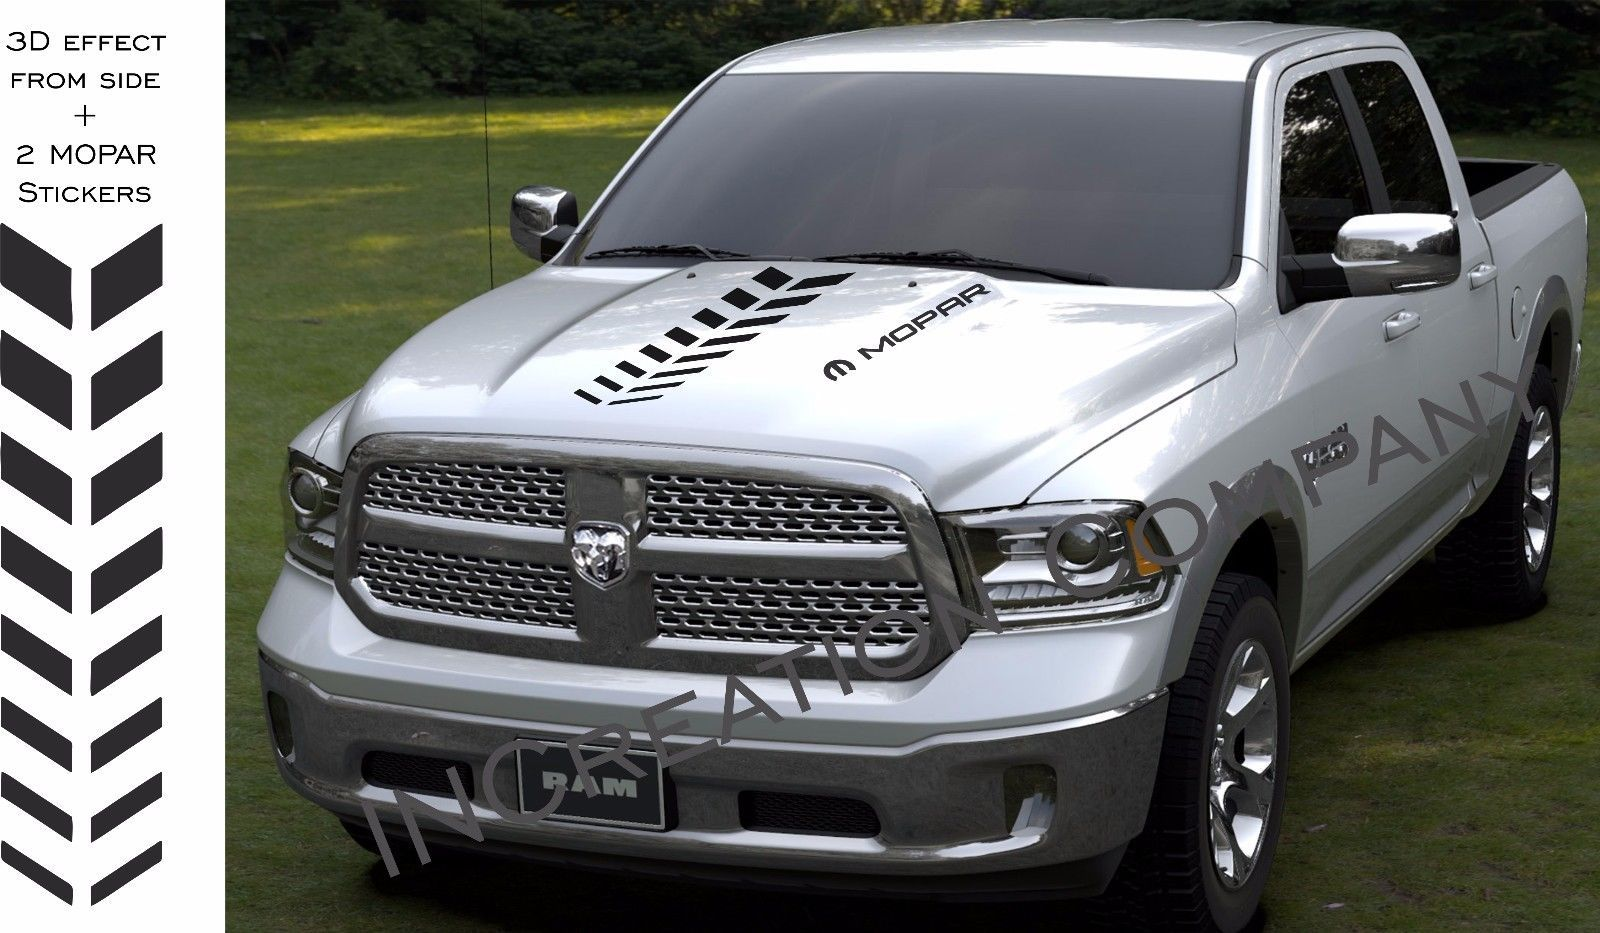 Hood vinyl set of decals Dodge Ram 1500 rally stri